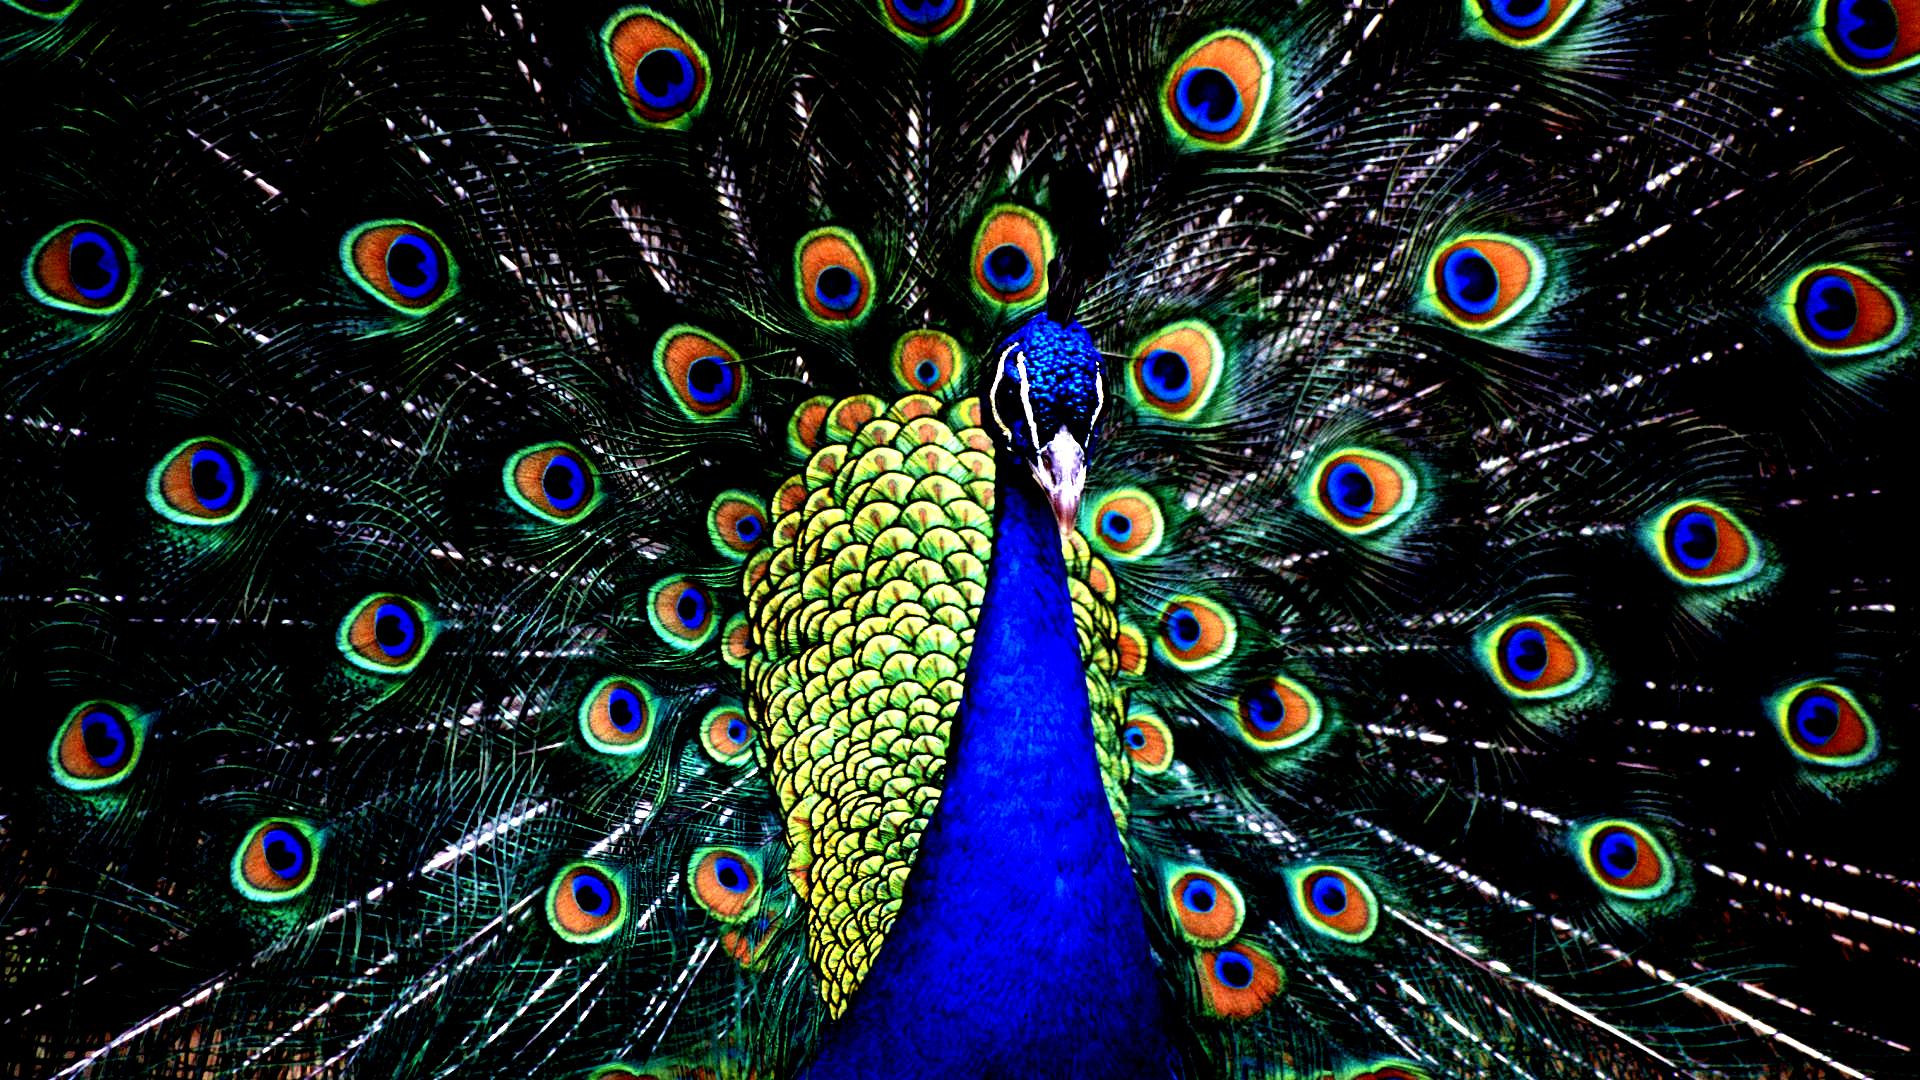 Hd Wallpapers Hd Backgrounds: Peacock HD Wallpapers